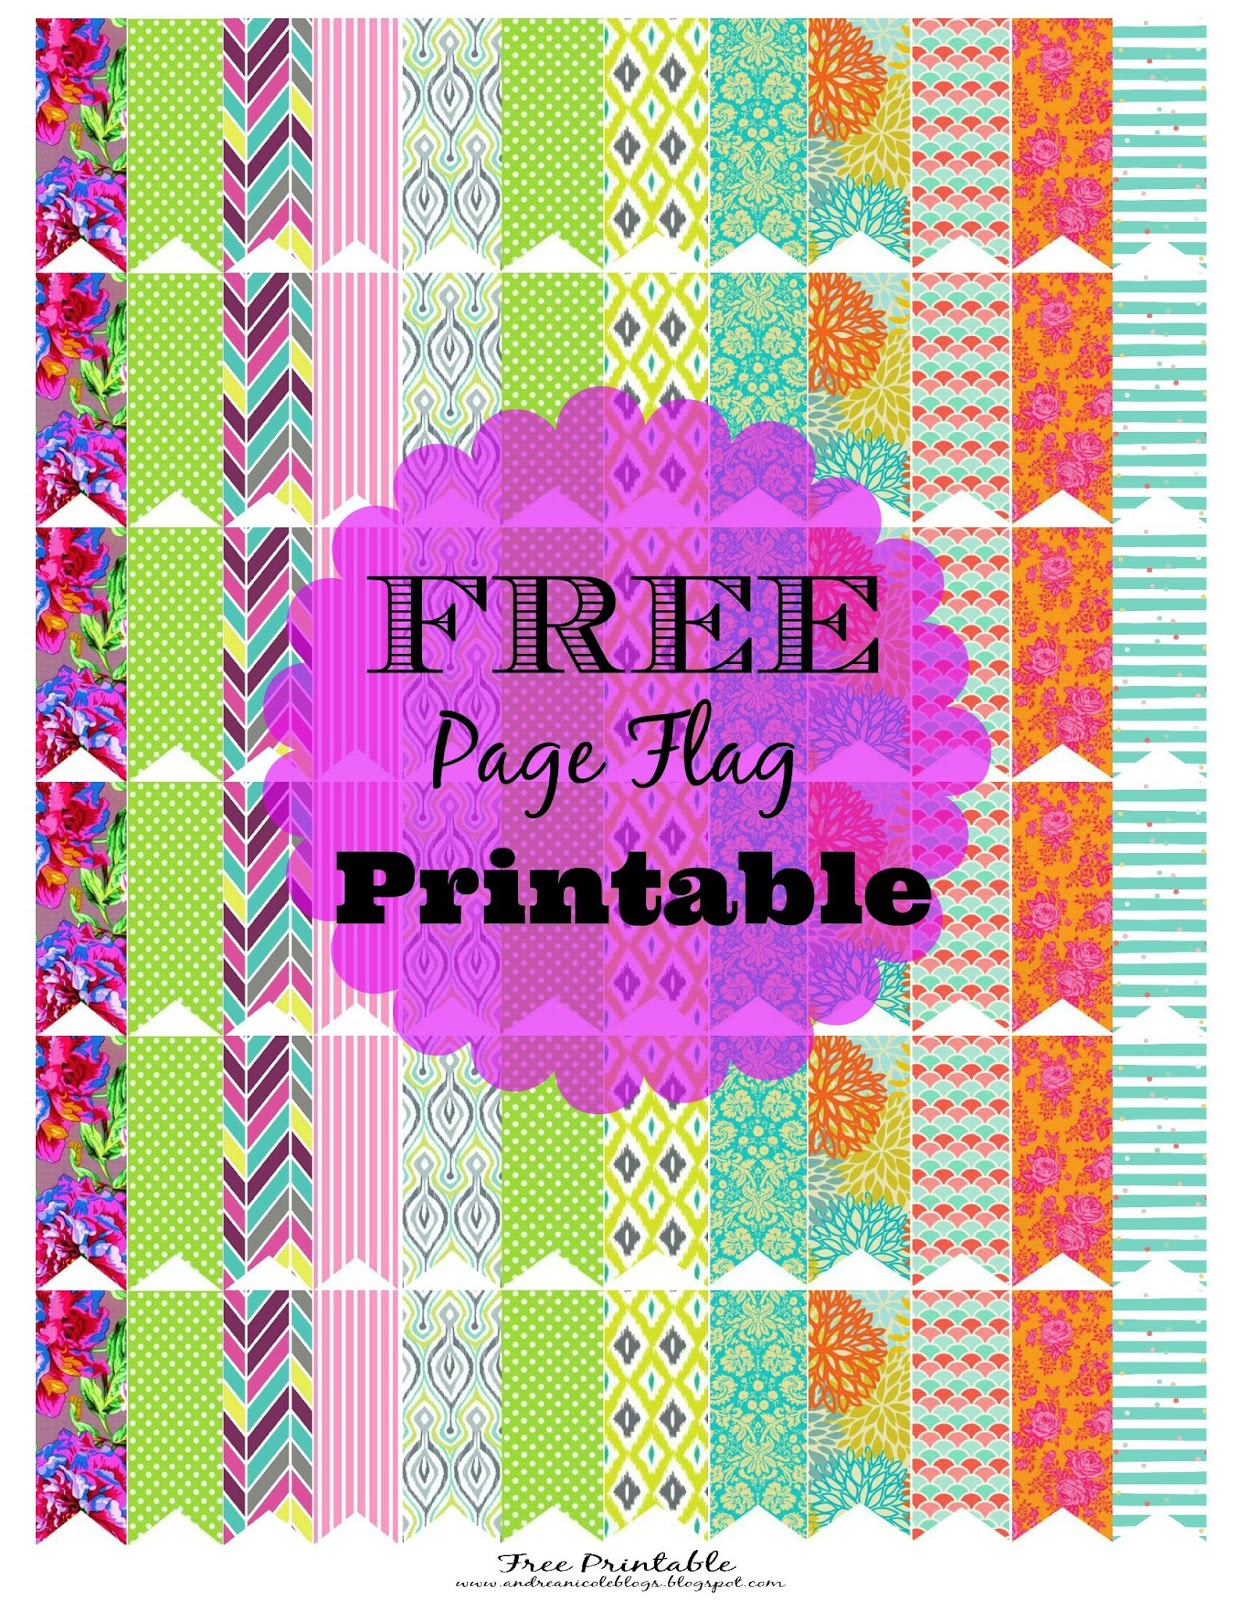 Andrea Nicole Friday Printable Freebie Page Flags